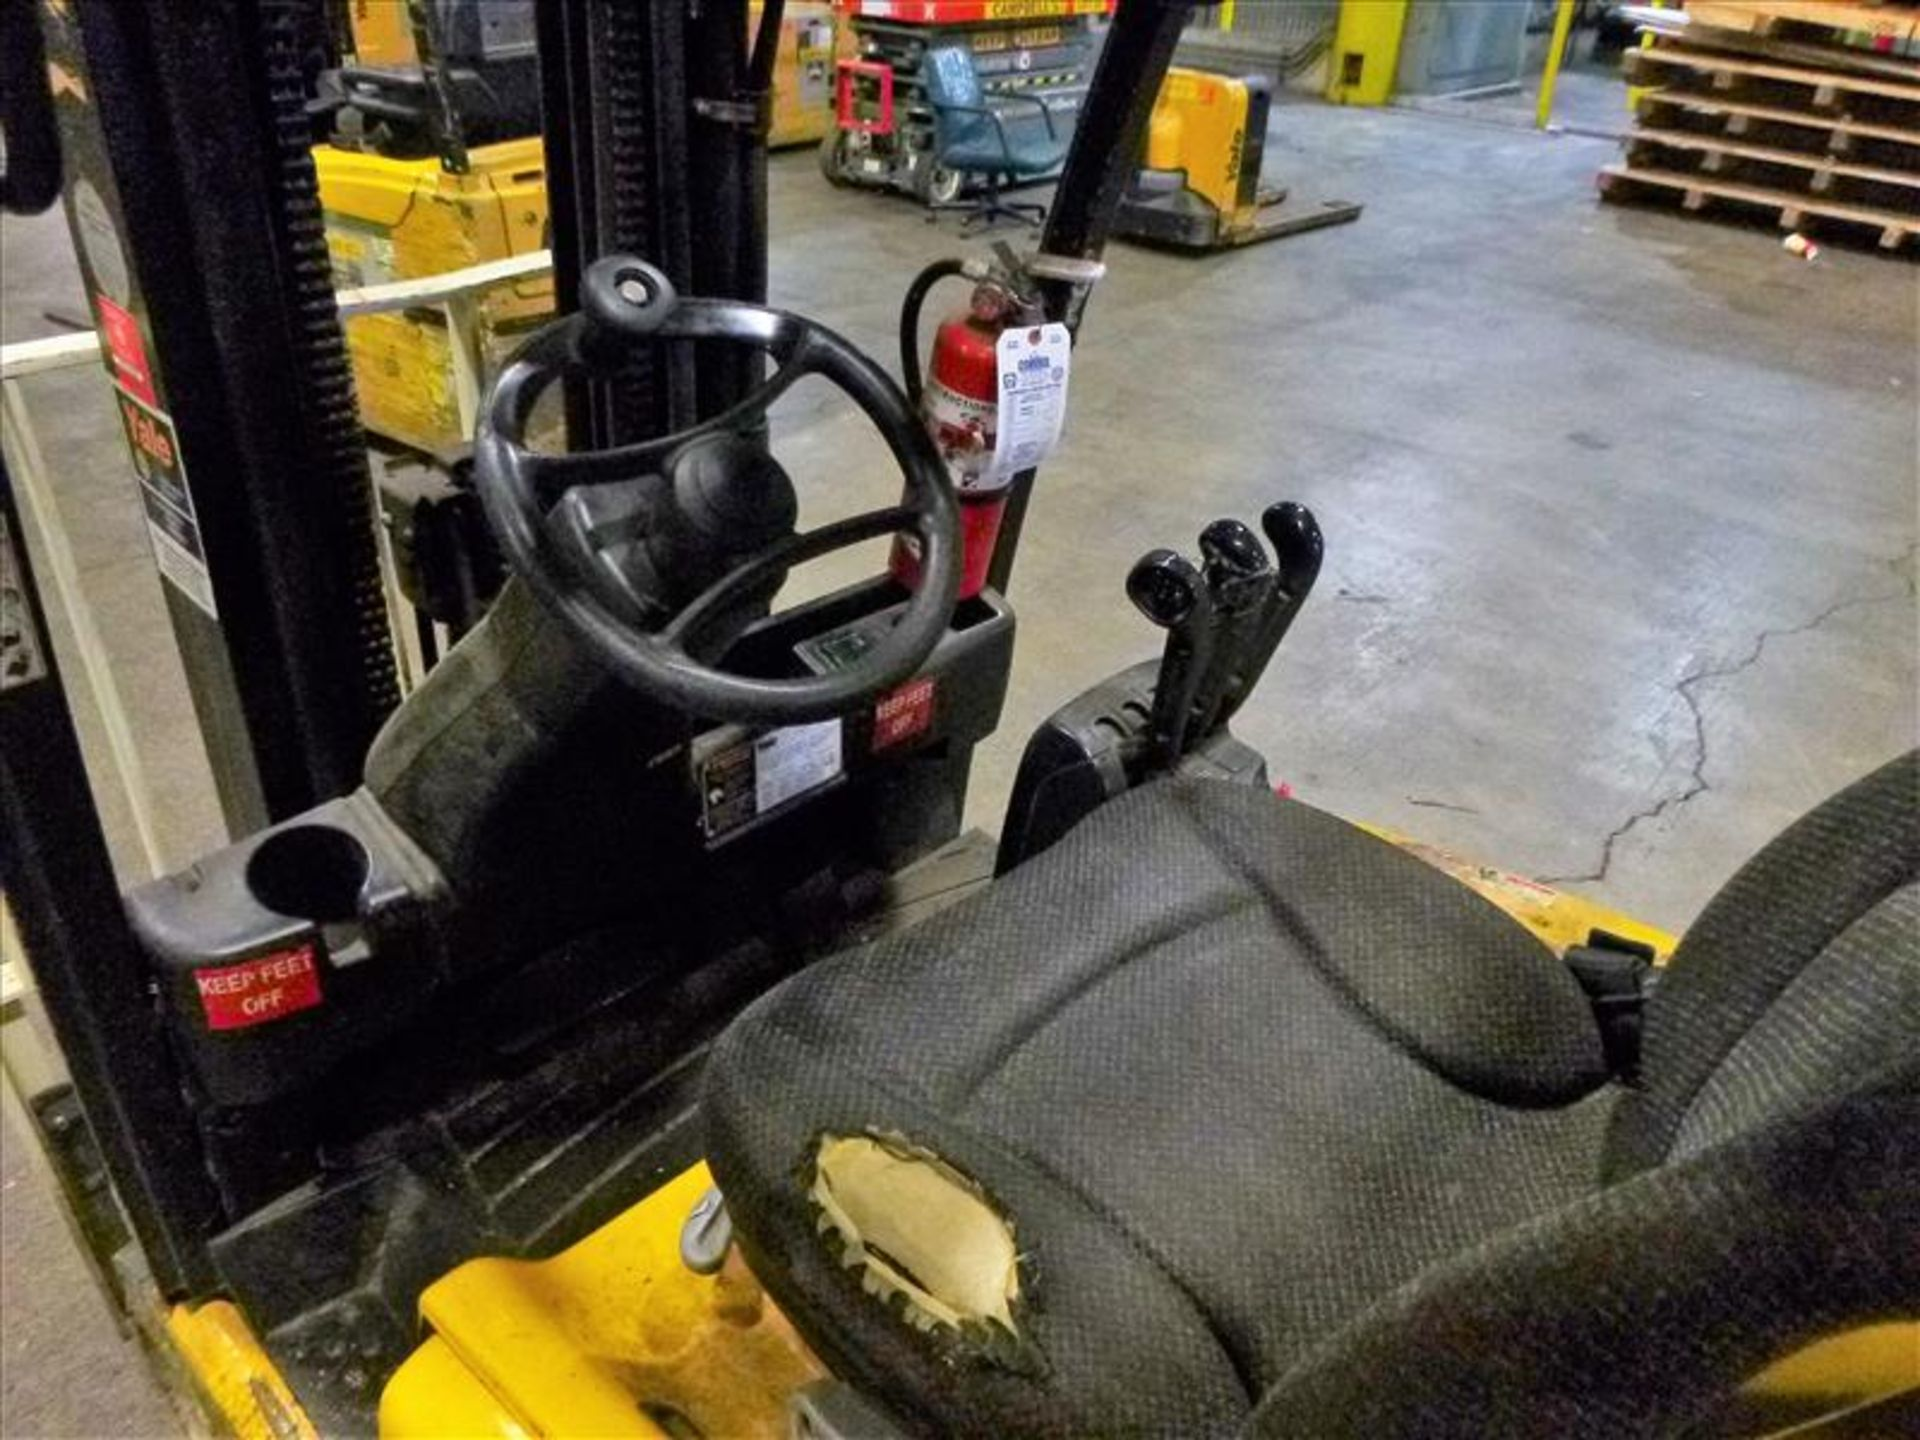 Yale fork lift truck, mod. ERP040VTN48TE076, ser. no. ???, 48V electric, 3800 lbs cap., 169 in. lift - Image 3 of 4